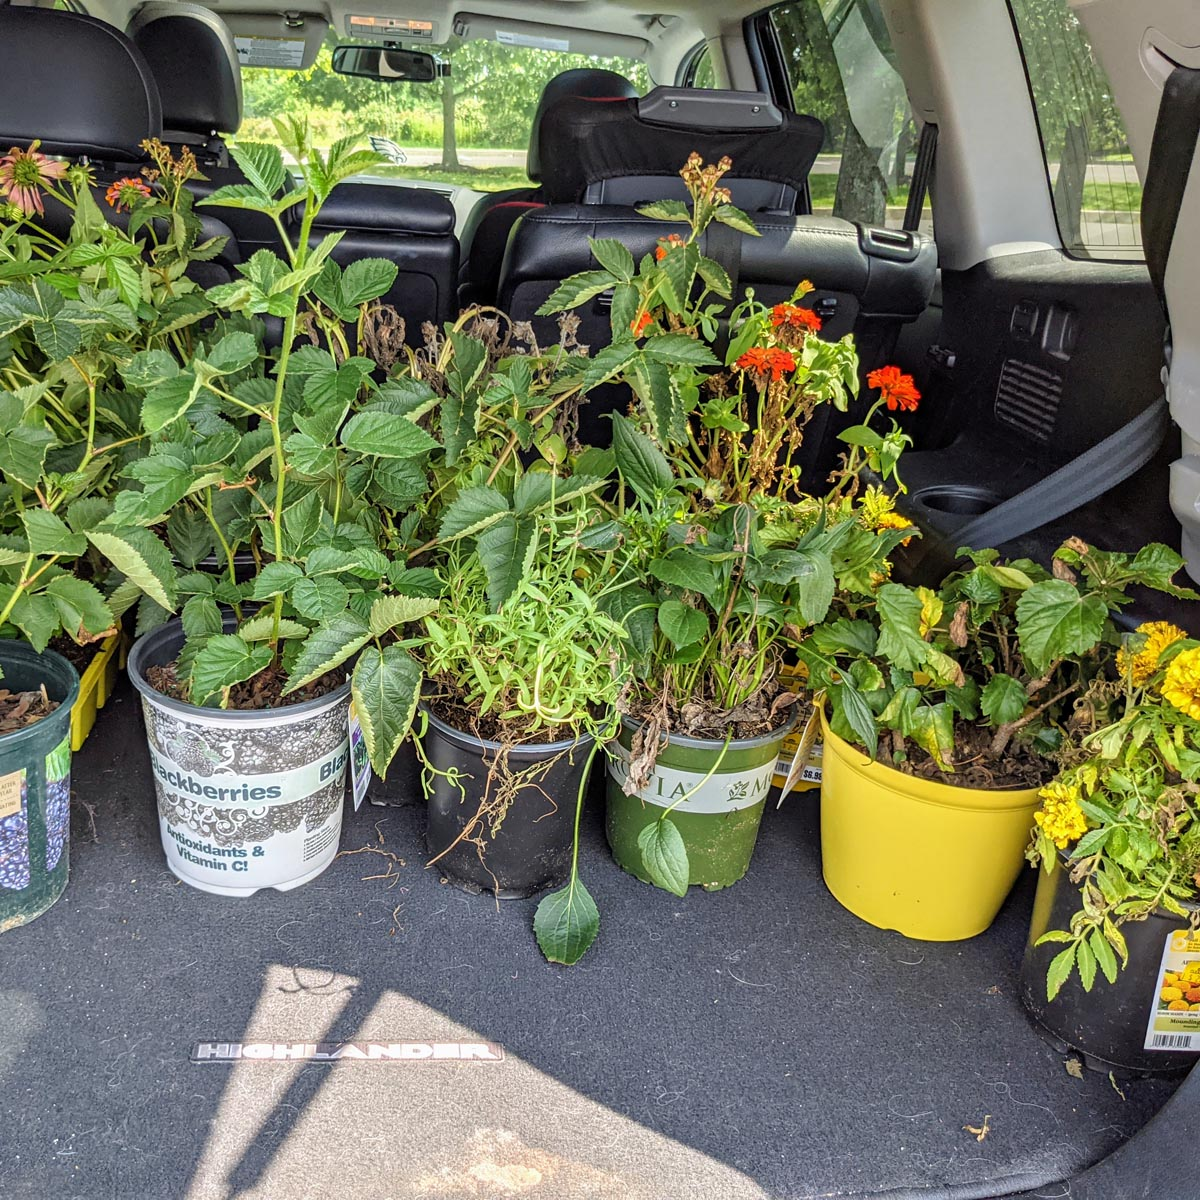 Trunk full of plants - how to rescue plants on clearance at garden centers like Lowes